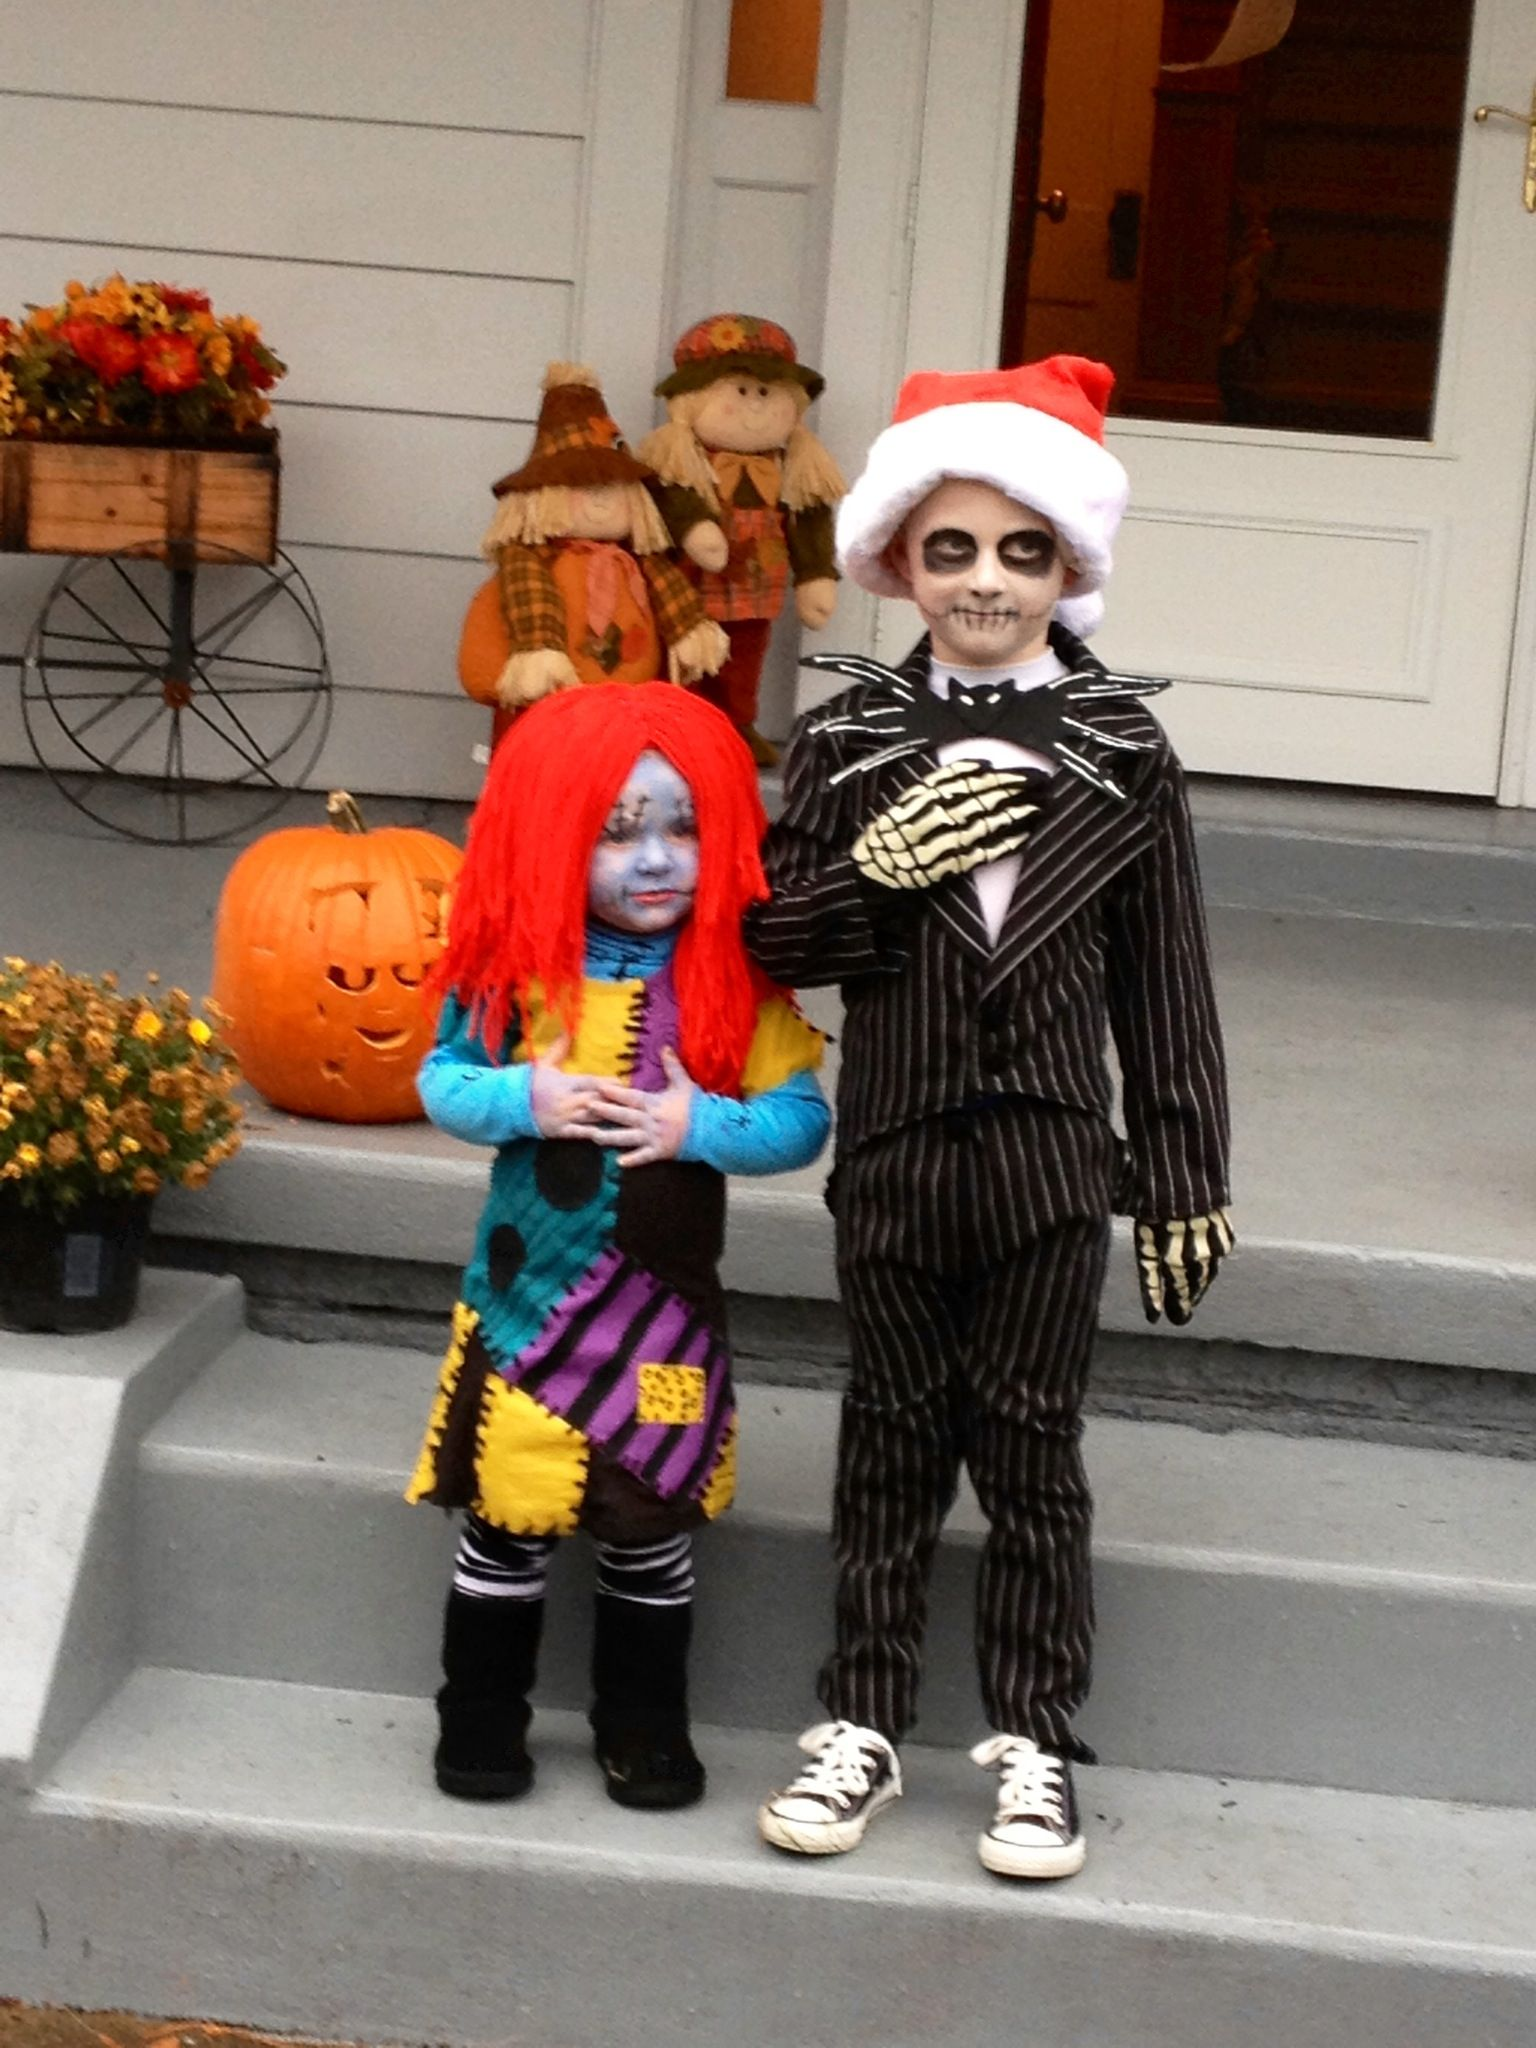 DIY Jack Skellington and Sally Stitches costumes from